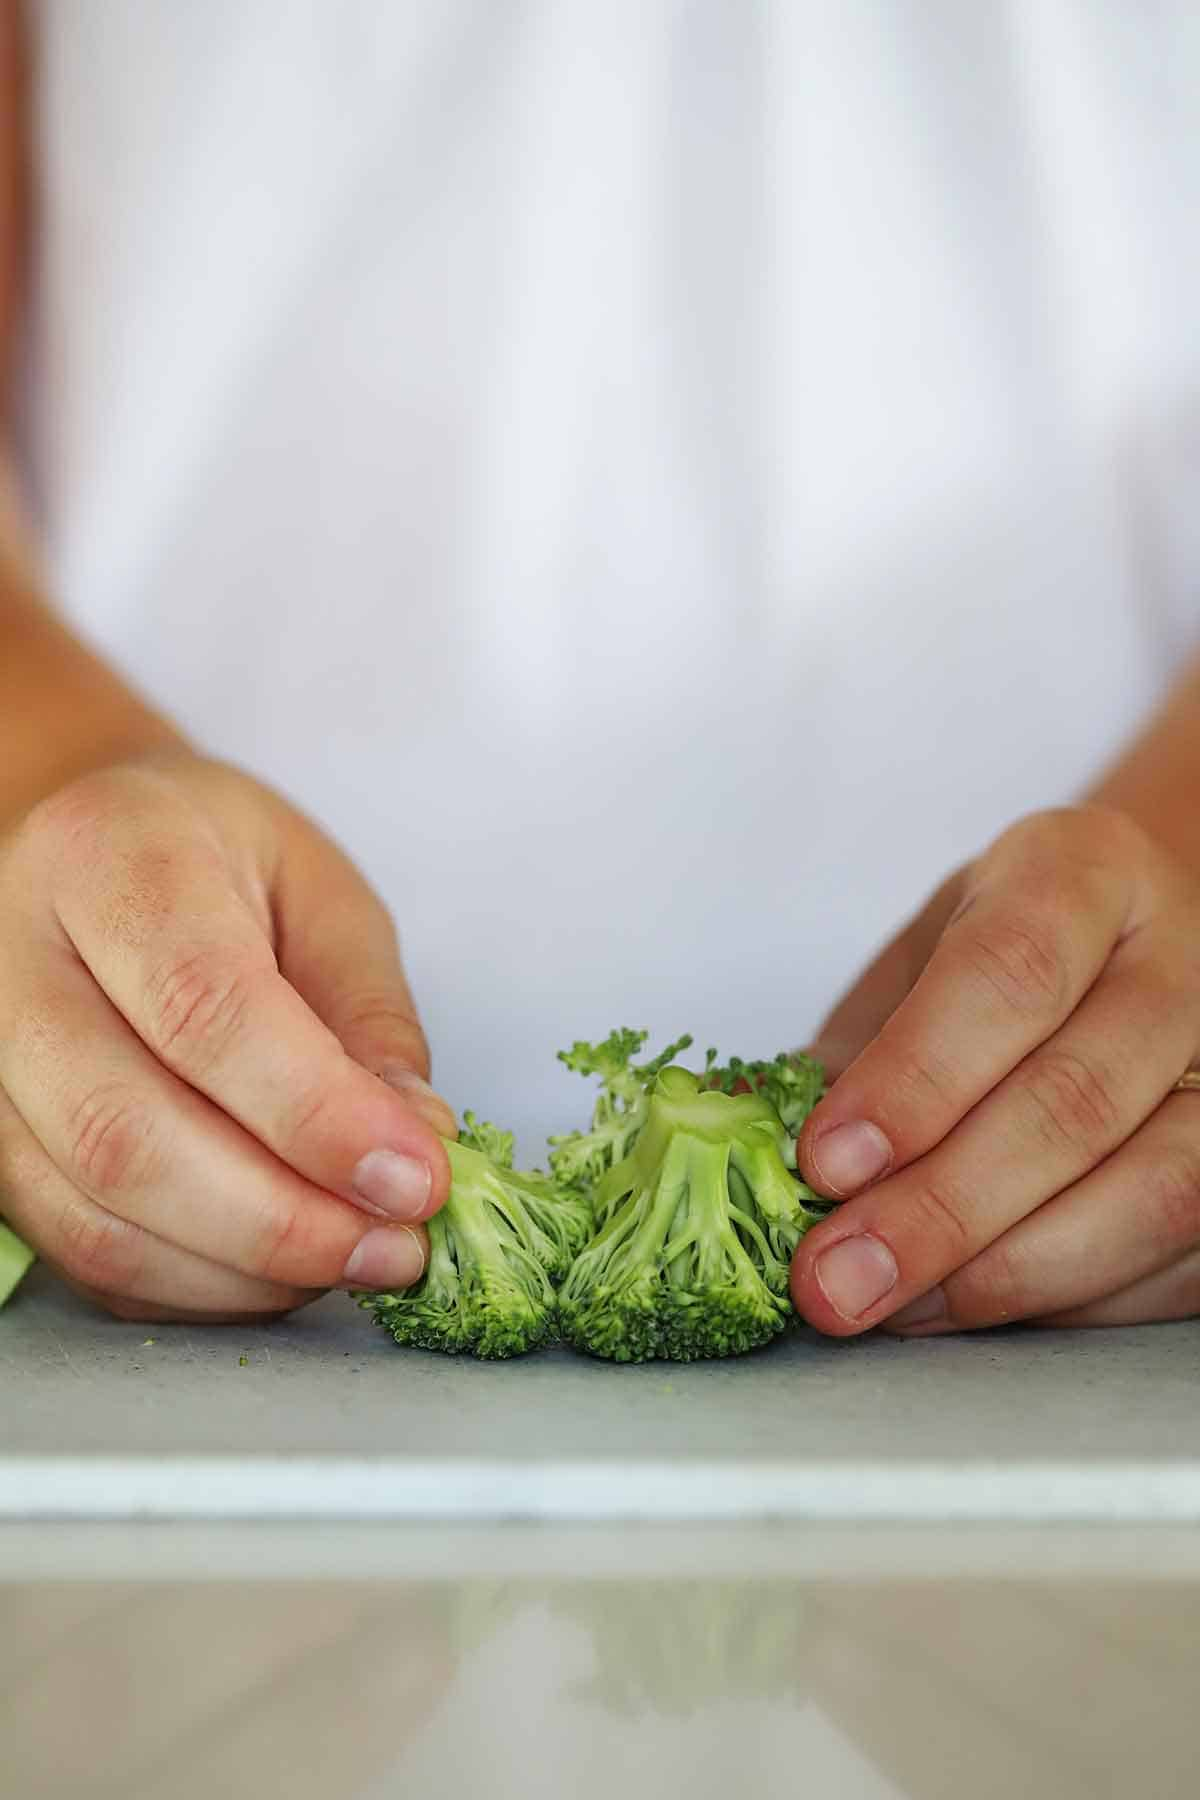 Separating a small broccoli floret into two pieces.